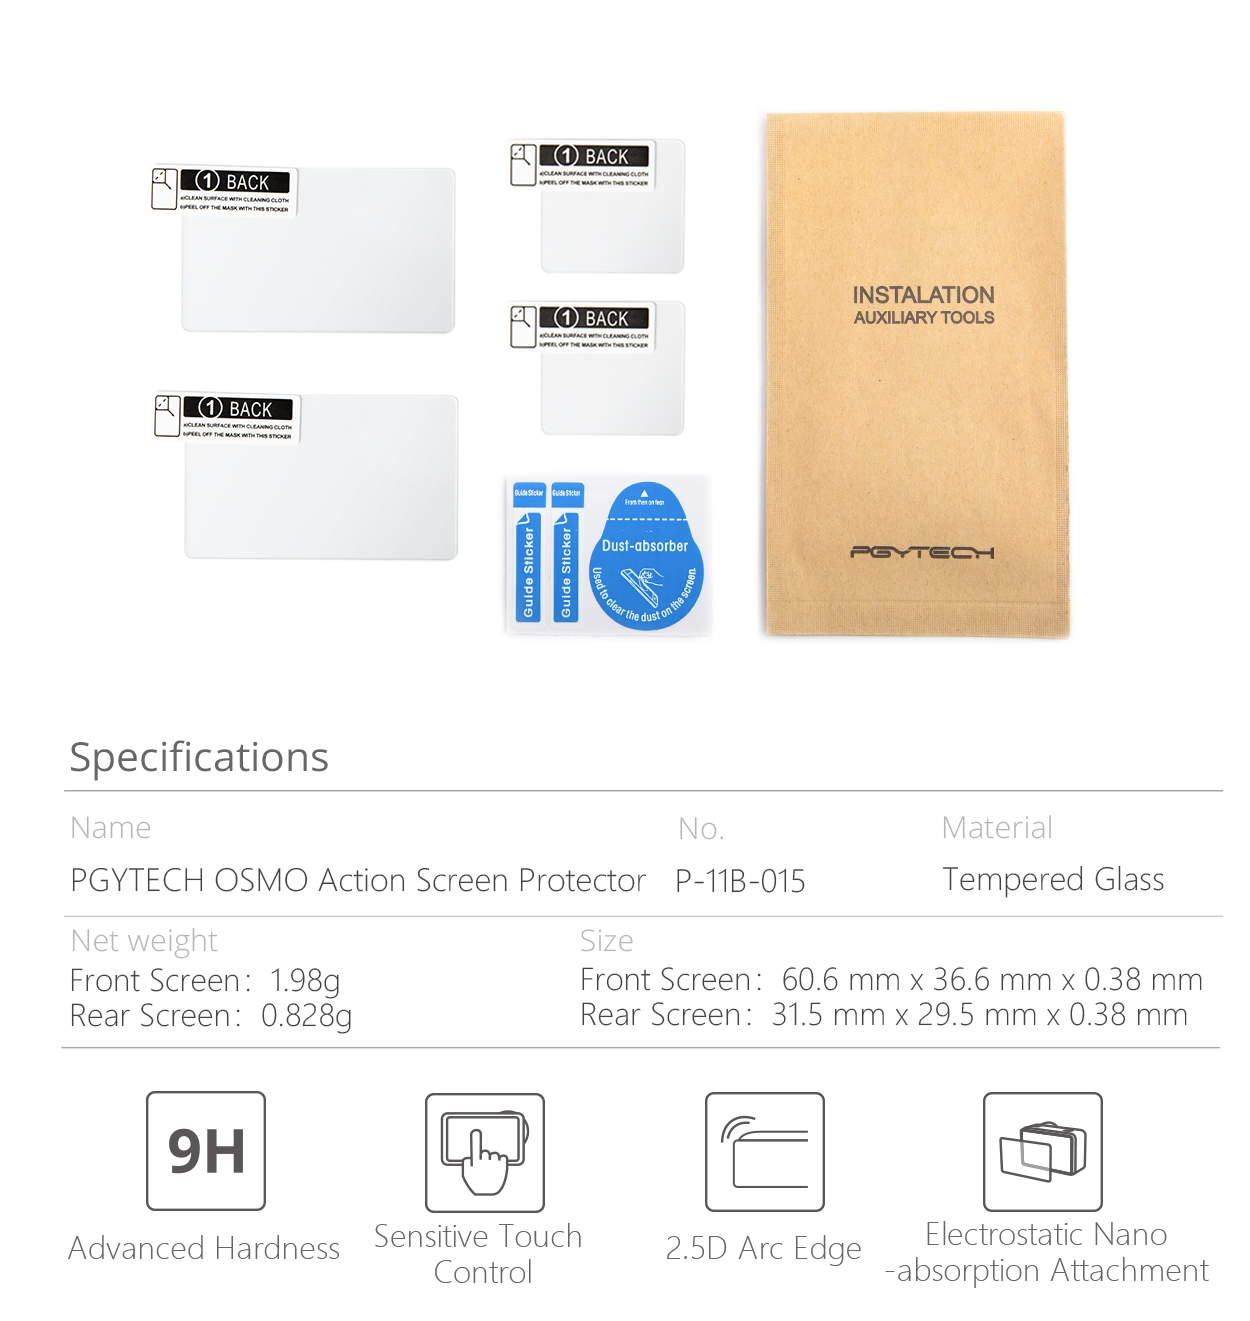 pgy-action-screen-protector2.jpg